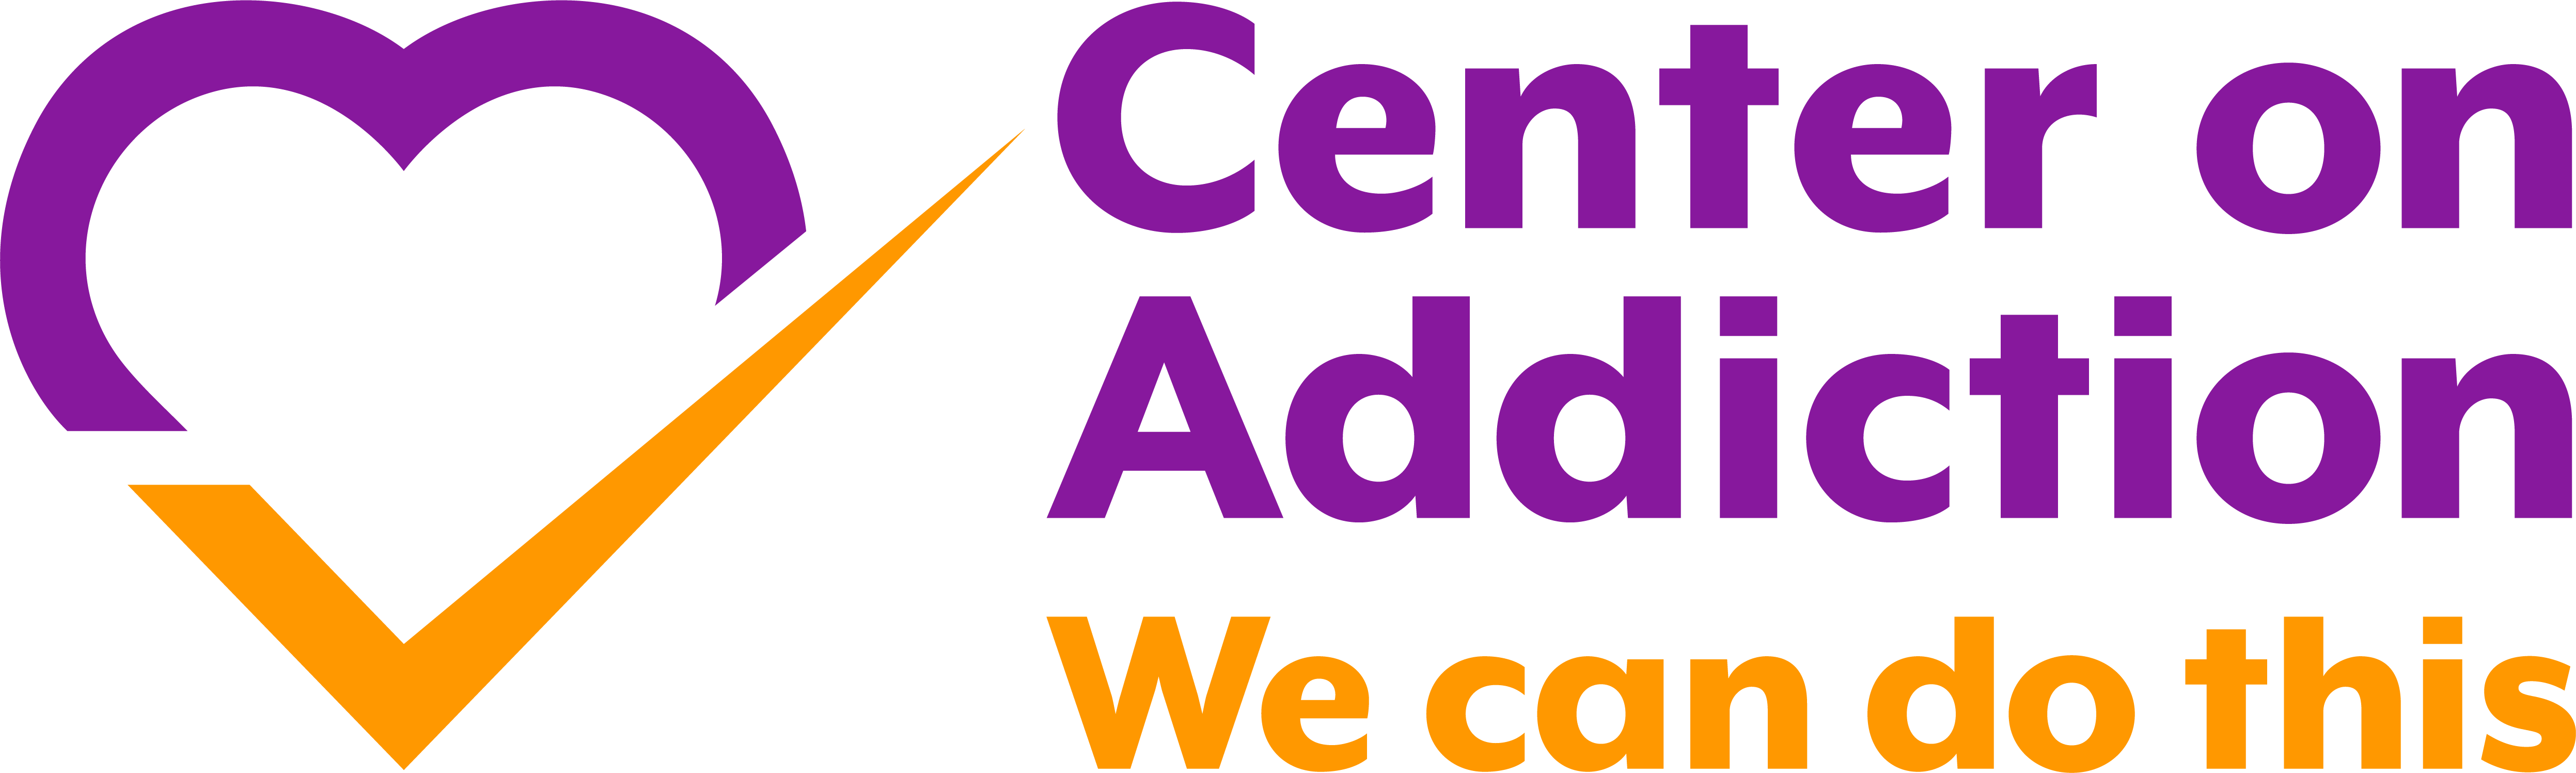 Center-on-Addiction-Logo